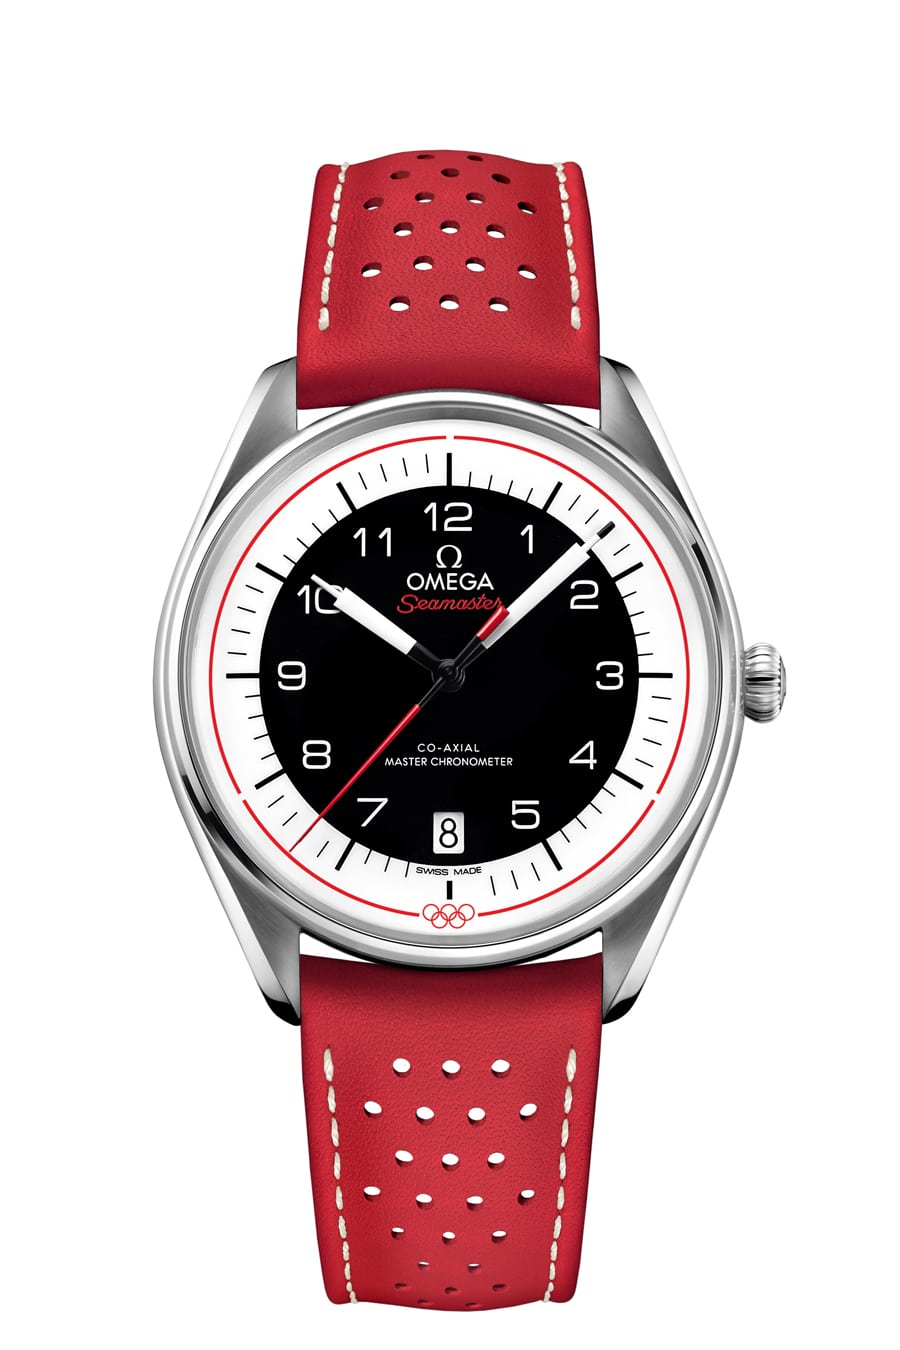 Omega Seamaster Olympic Games Collection in Rot (Referenz:522.32.40.20.01.004)